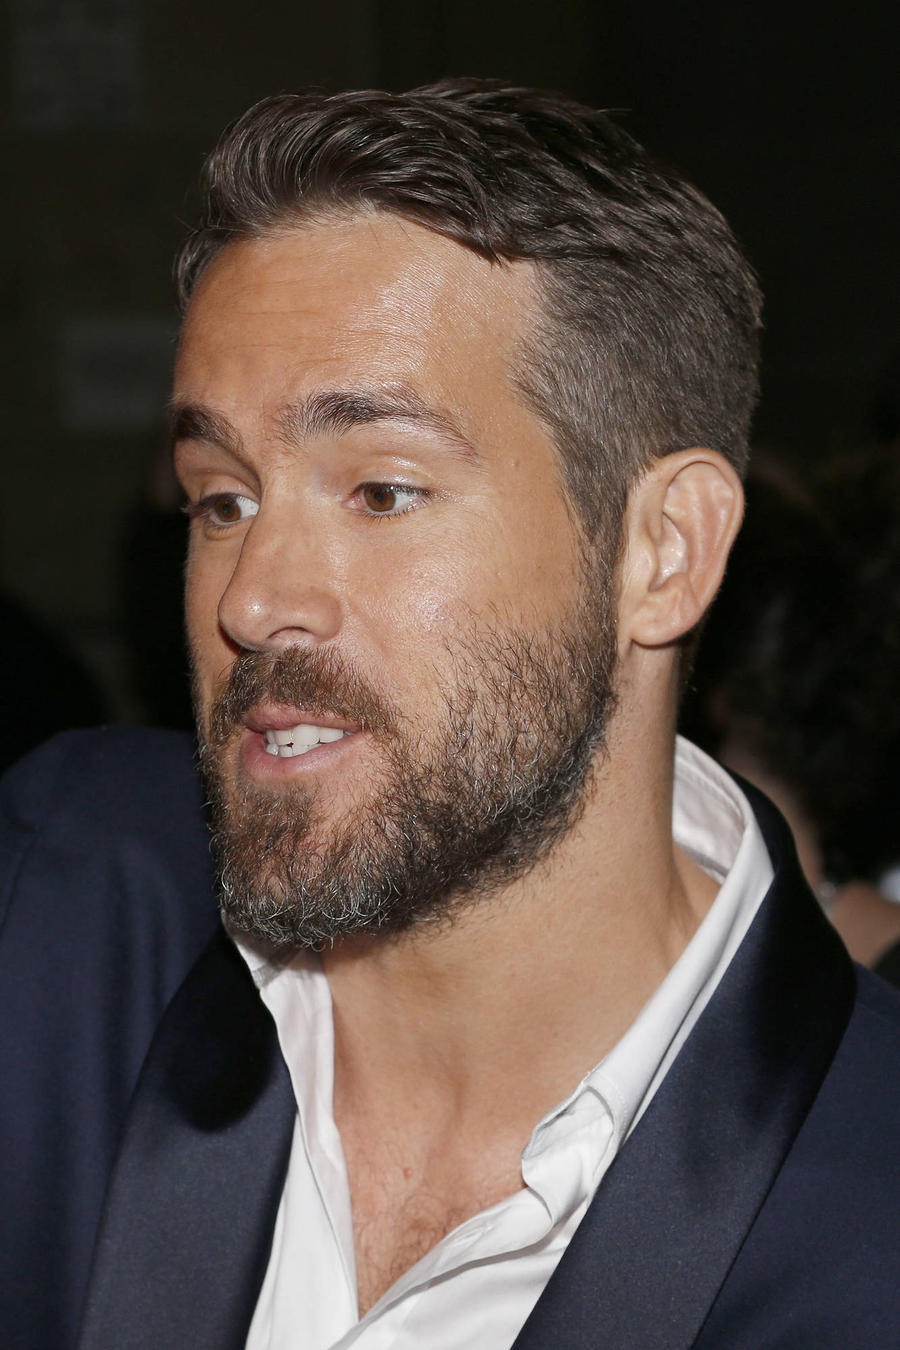 Ryan Reynolds Injured Back In Gym Workout